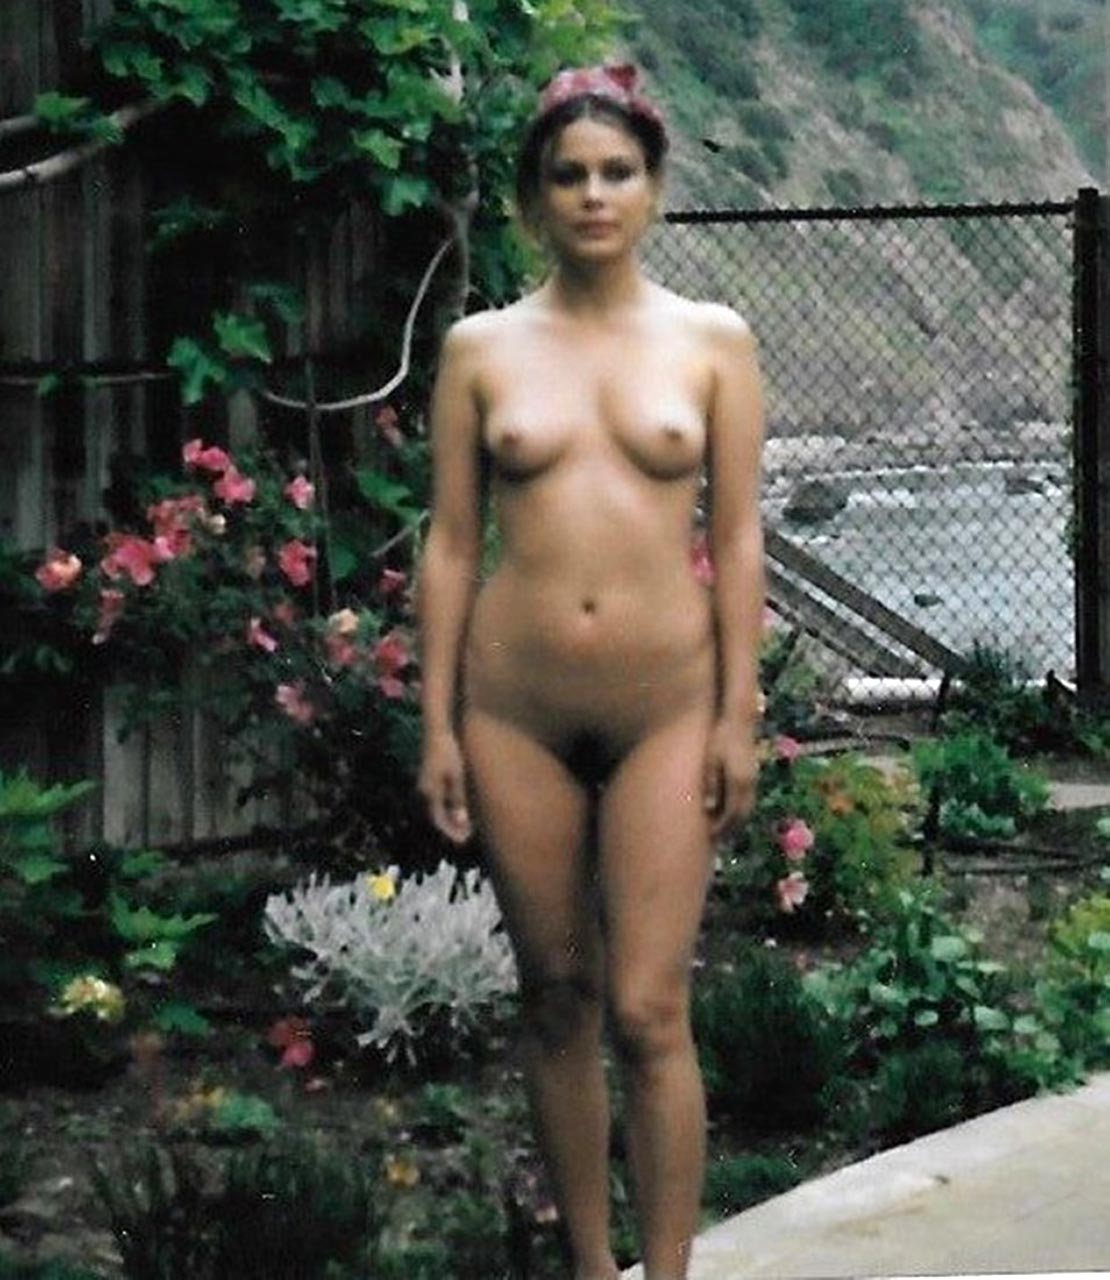 kelley nathalie Full nude